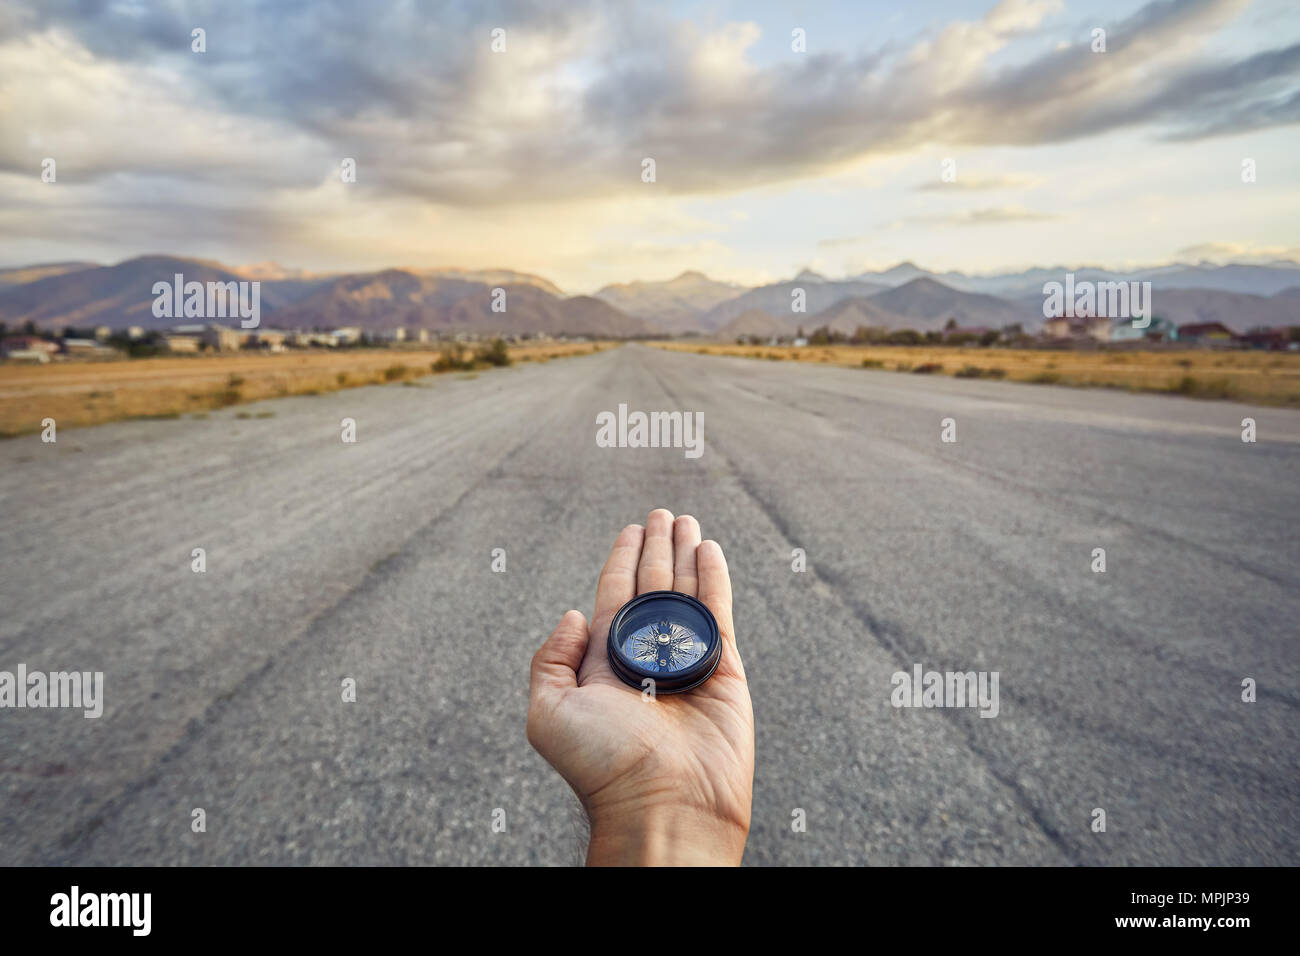 Traveler holding compass on the road with mountains at sunrise sky background. Travel and adventure concept. - Stock Image